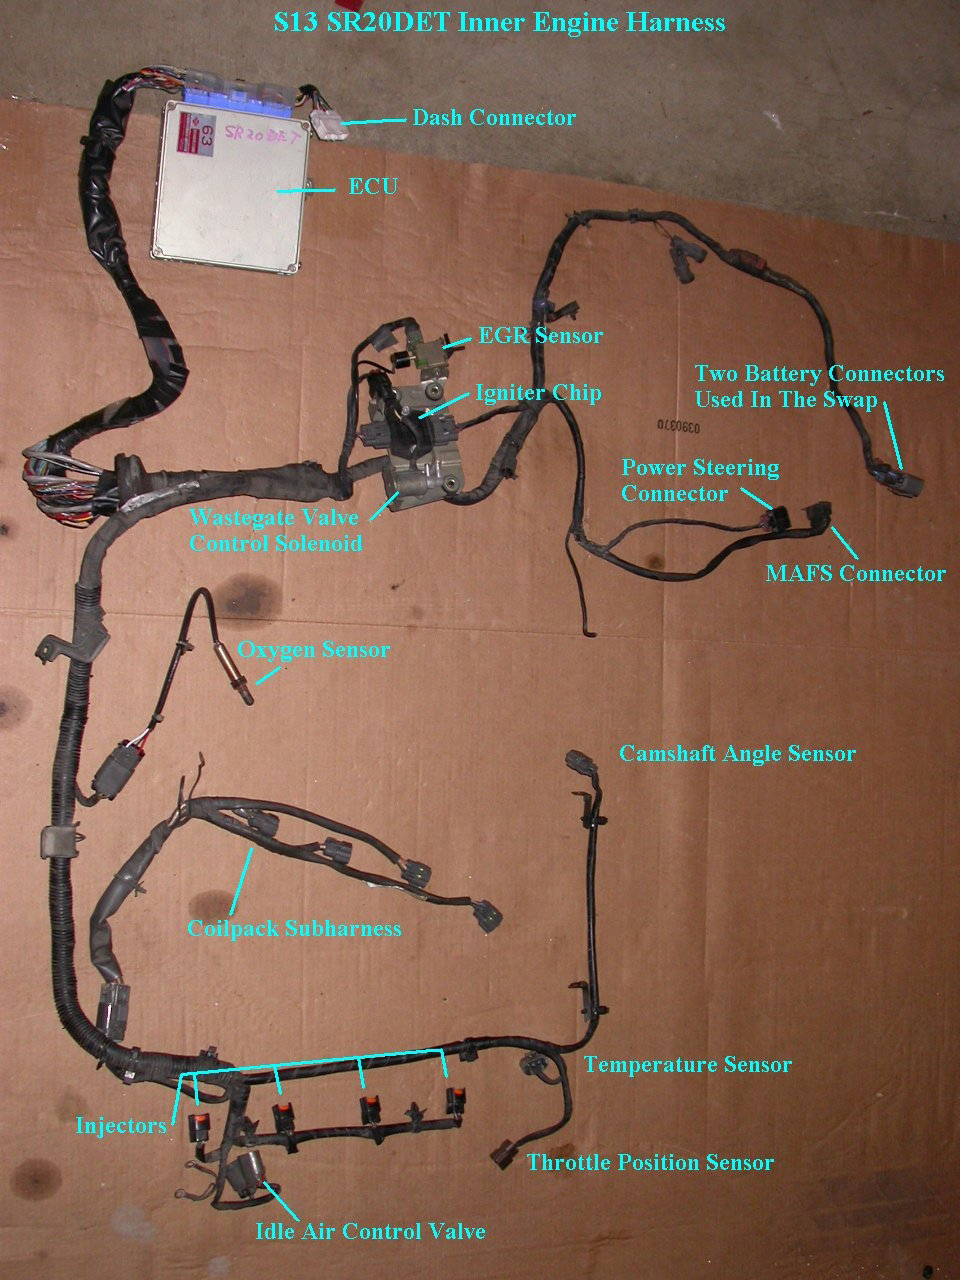 engine swap wiring harness vhc performance - engine parts hummvi wiring harness engine scamatics #11